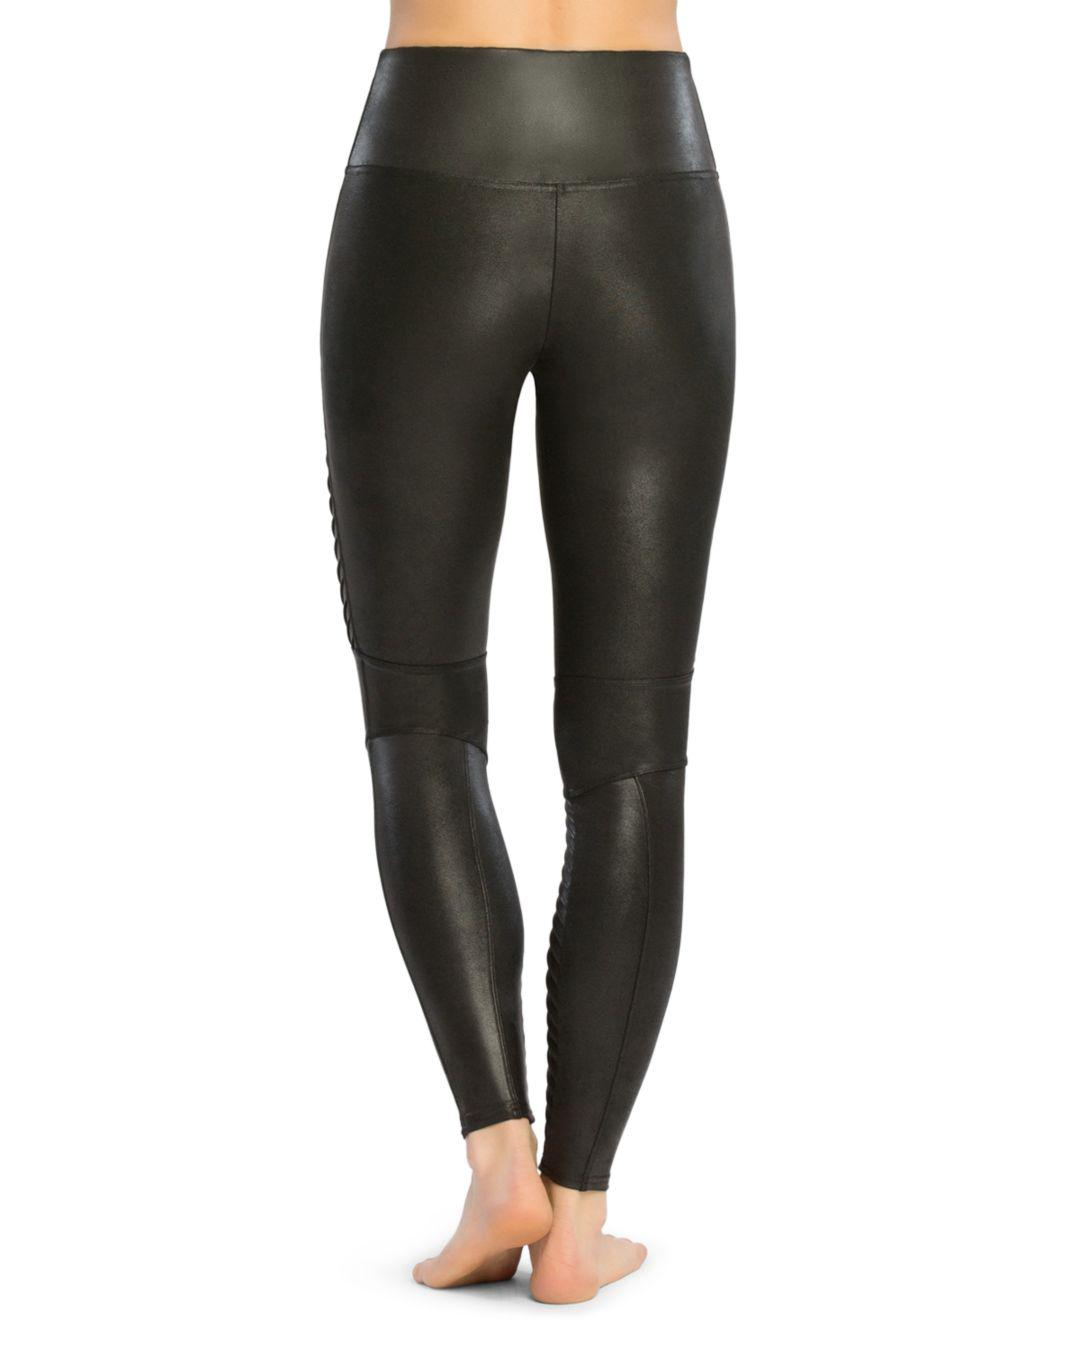 424695214351f6 Spanx Moto Faux Leather Leggings in Black - Lyst